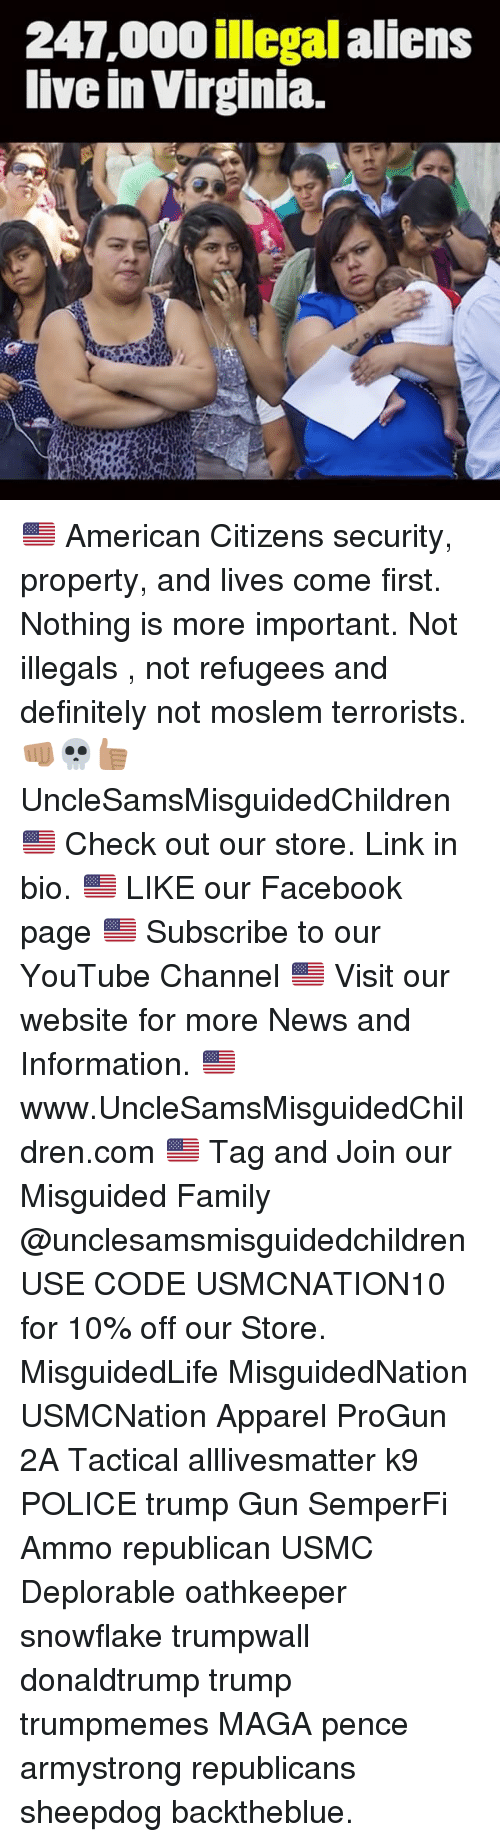 Definitally: 247,000 illegal aliens  live in Virginia. 🇺🇸 American Citizens security, property, and lives come first. Nothing is more important. Not illegals , not refugees and definitely not moslem terrorists. 👊🏽💀👍🏽 UncleSamsMisguidedChildren 🇺🇸 Check out our store. Link in bio. 🇺🇸 LIKE our Facebook page 🇺🇸 Subscribe to our YouTube Channel 🇺🇸 Visit our website for more News and Information. 🇺🇸 www.UncleSamsMisguidedChildren.com 🇺🇸 Tag and Join our Misguided Family @unclesamsmisguidedchildren USE CODE USMCNATION10 for 10% off our Store. MisguidedLife MisguidedNation USMCNation Apparel ProGun 2A Tactical alllivesmatter k9 POLICE trump Gun SemperFi Ammo republican USMC Deplorable oathkeeper snowflake trumpwall donaldtrump trump trumpmemes MAGA pence armystrong republicans sheepdog backtheblue.